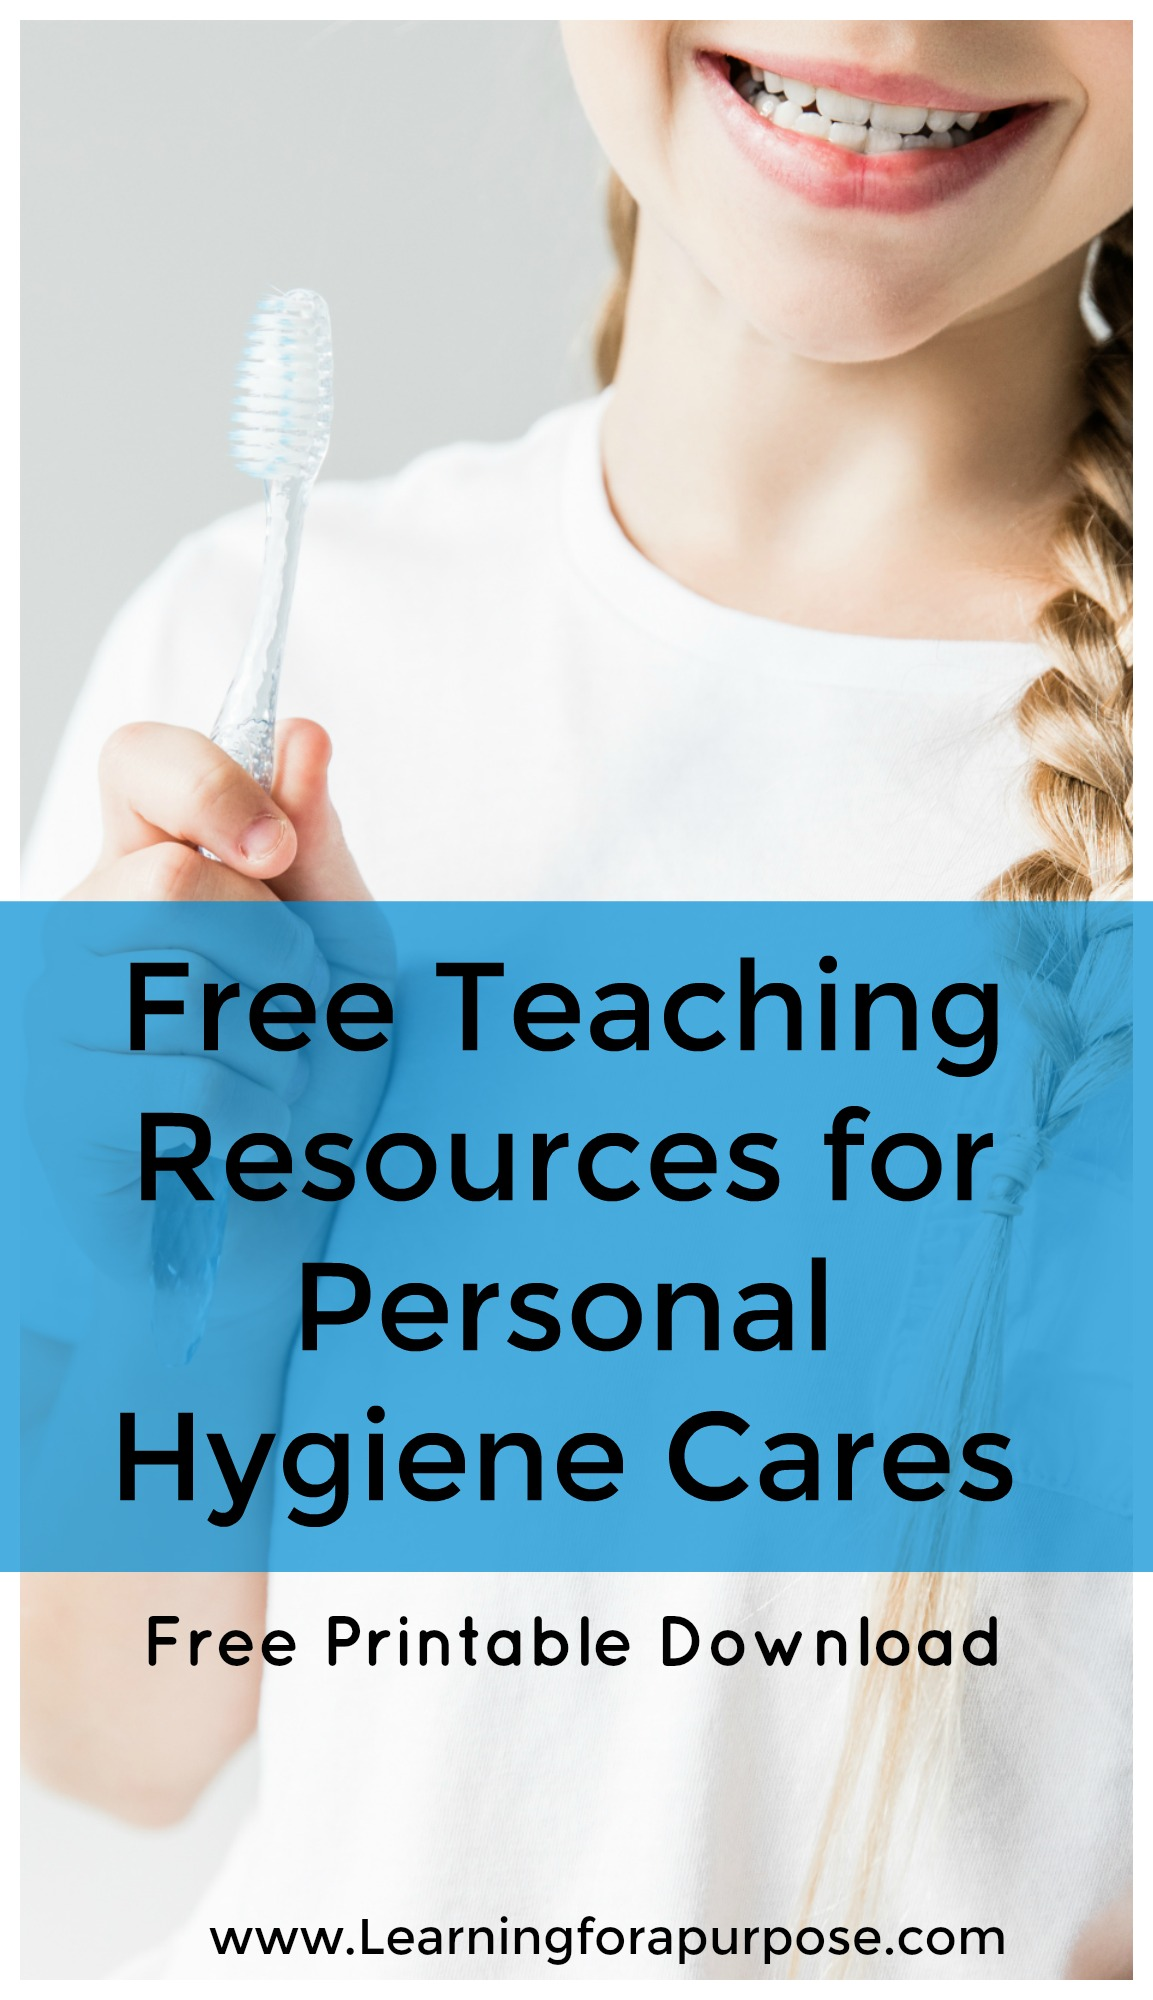 Free Teaching Resources for Personal Hygiene Cares